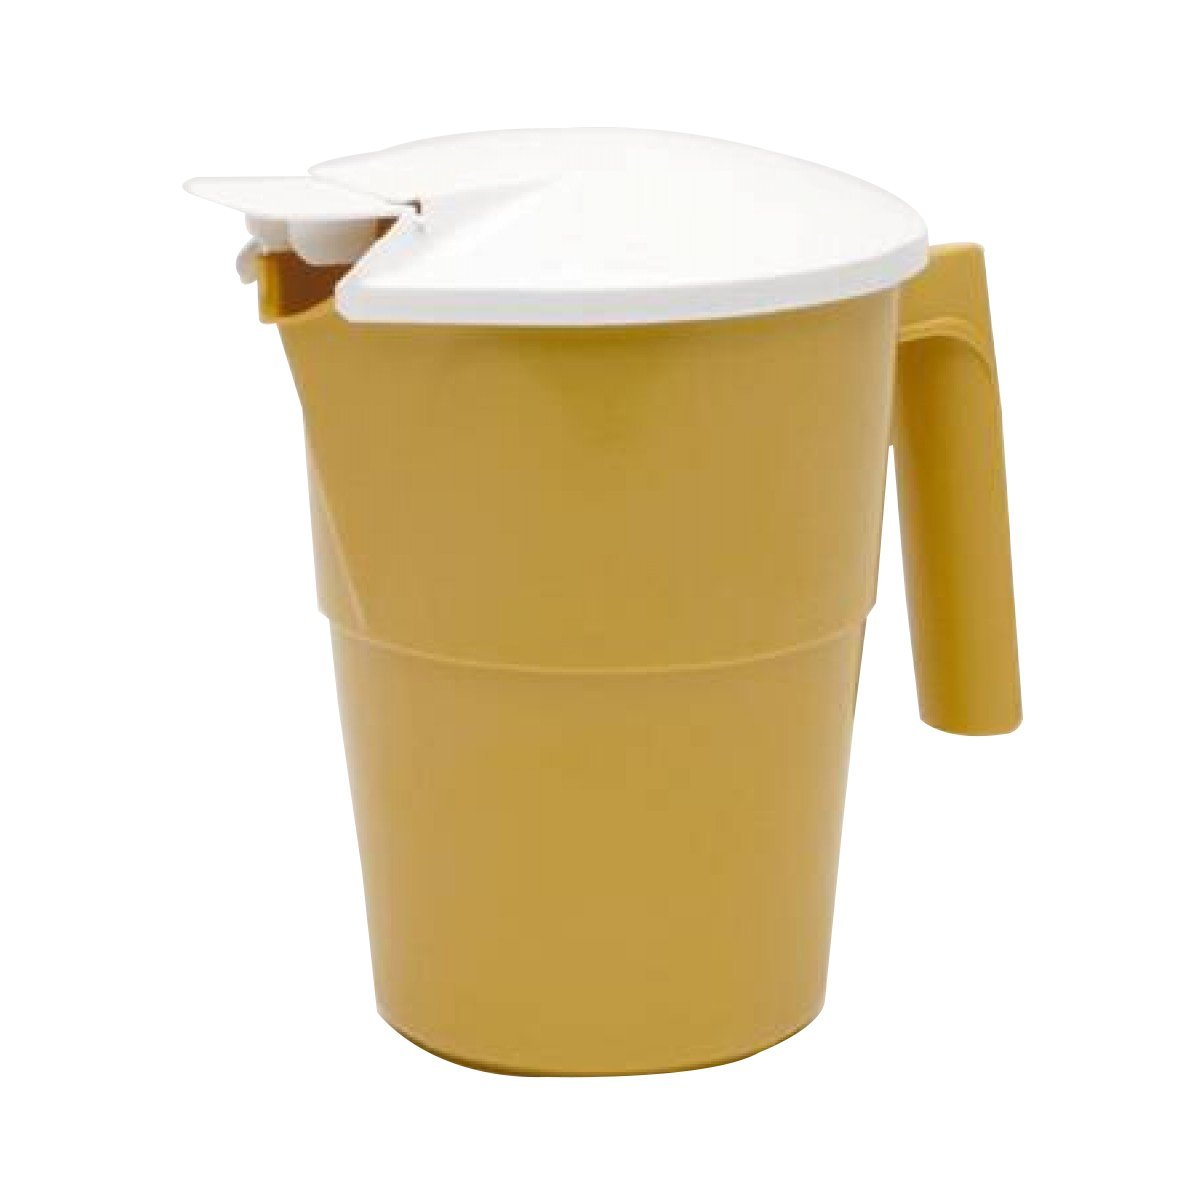 Medegen Medical Products H200-05 Medegen Medical Products H200-05 Pitcher with White Cover, 20/Pallet, Gold (Pack of 100)